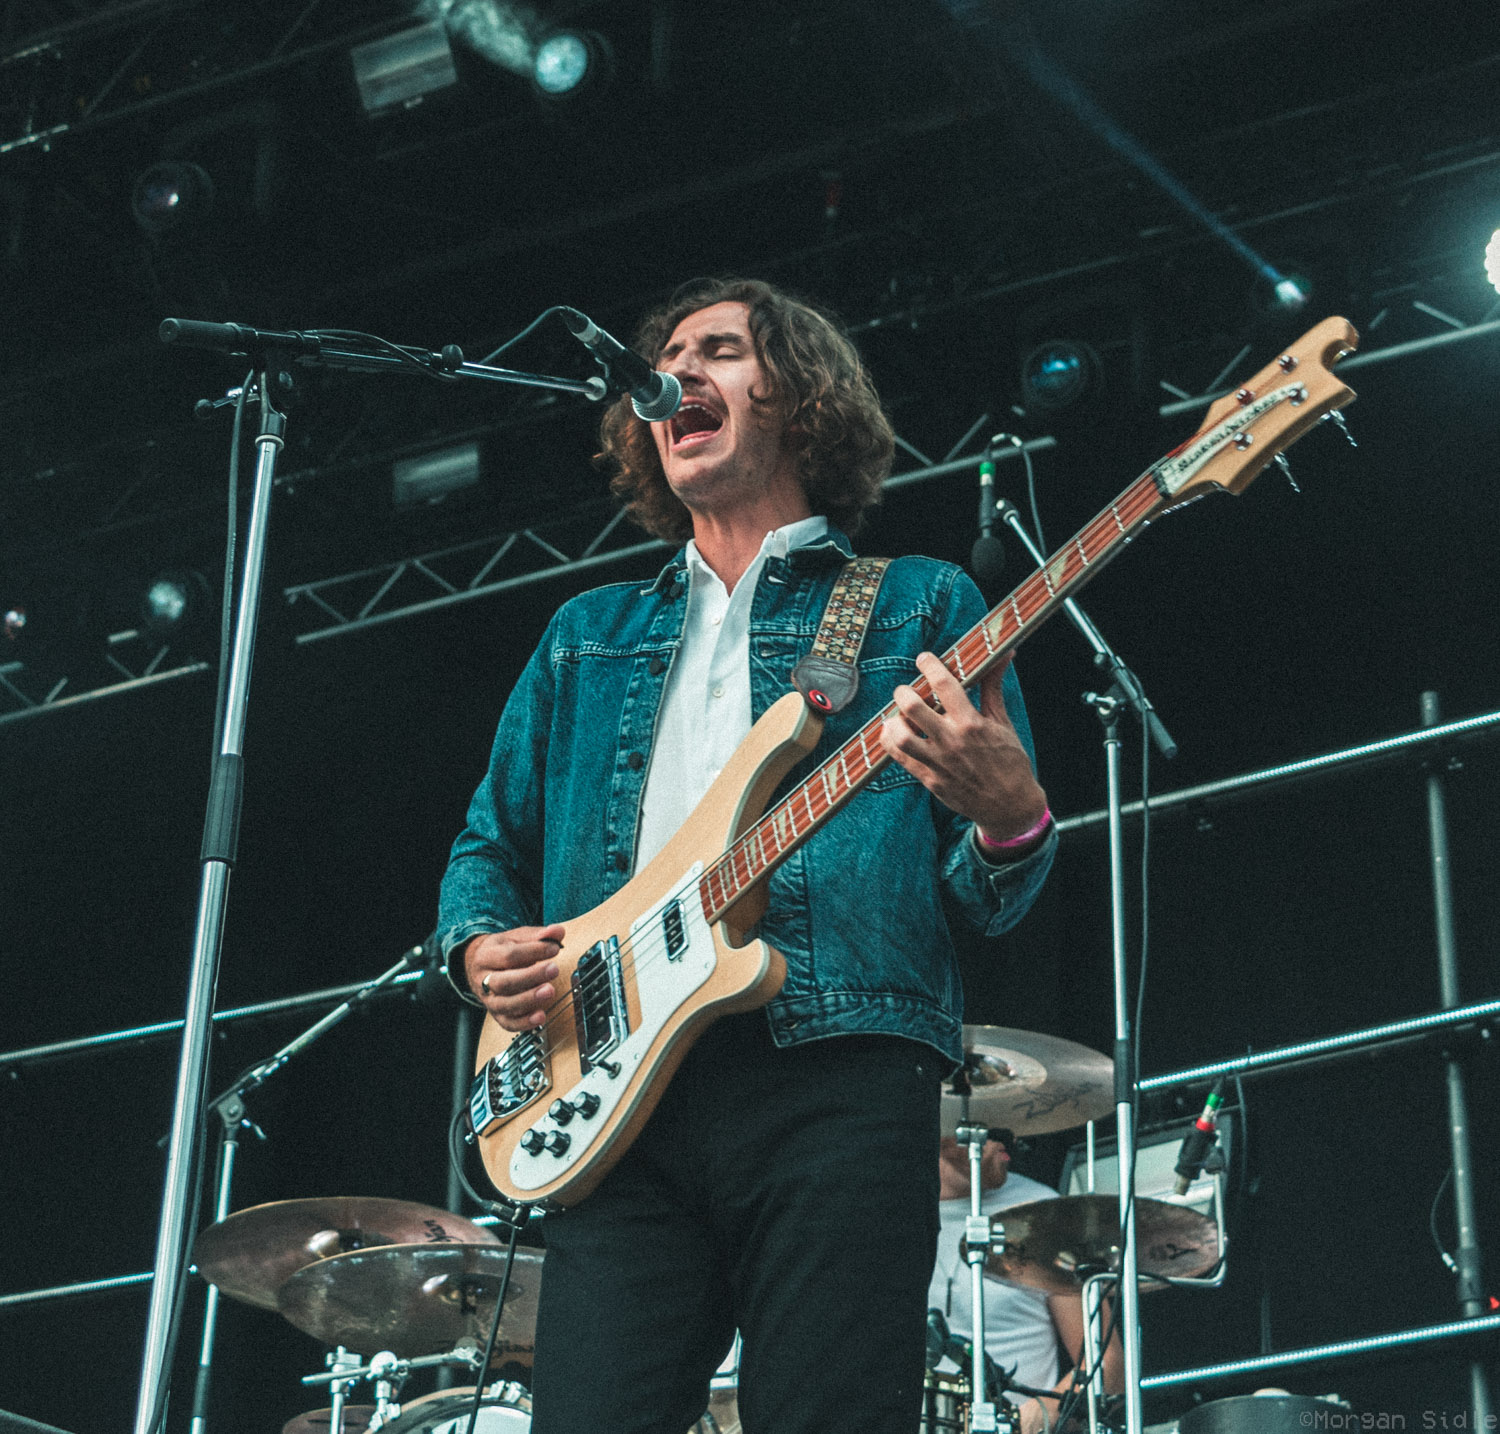 Blossoms at Tramlines // 21-07-18